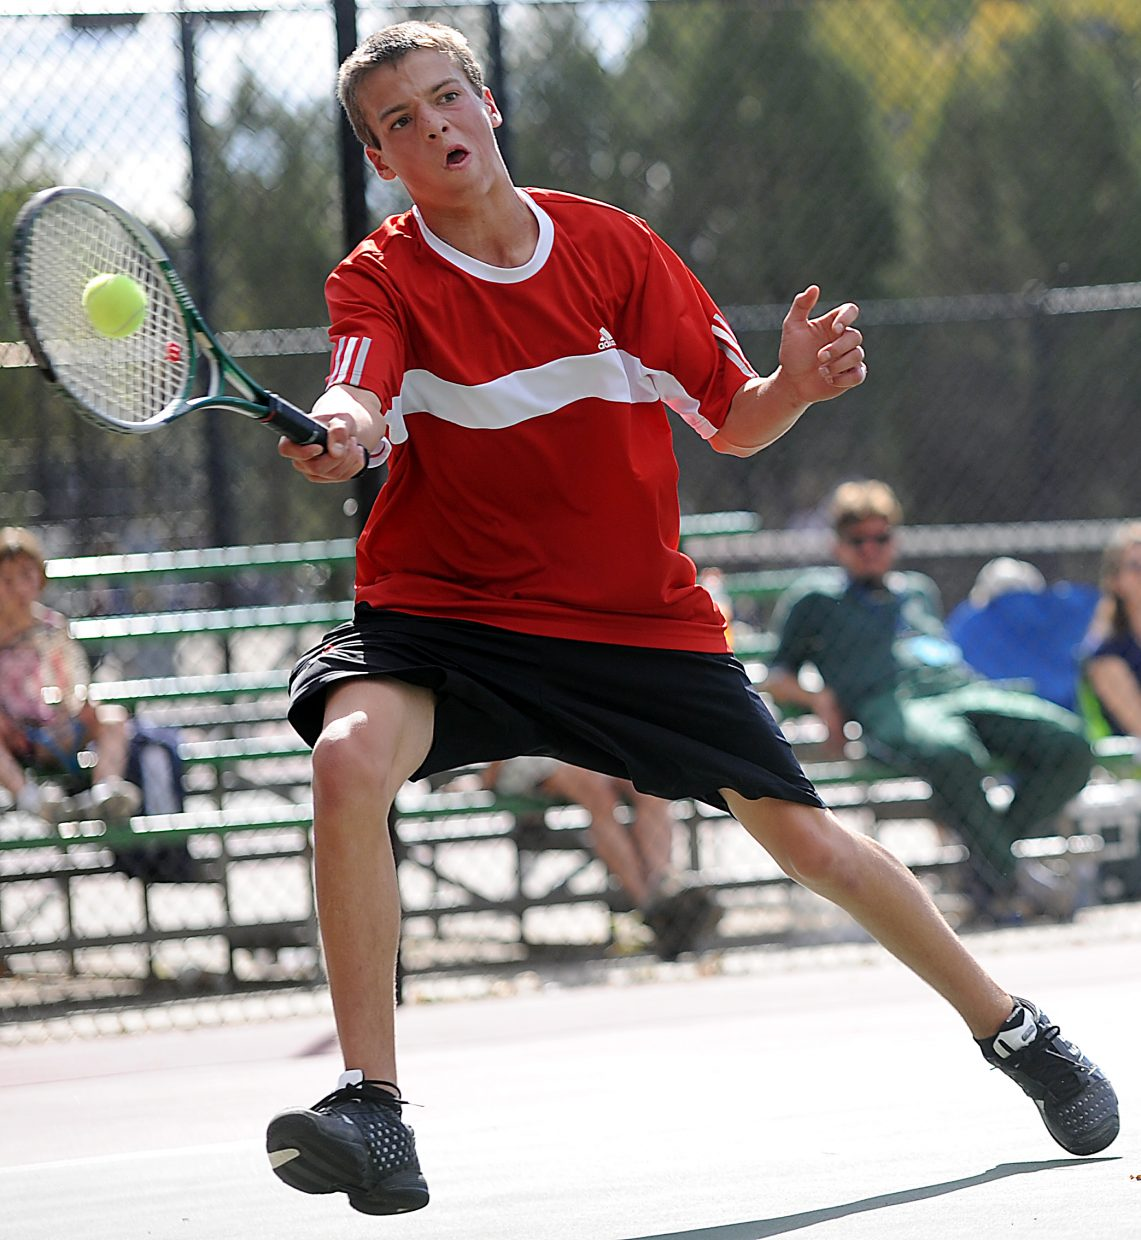 Keegan Burger swings Thursday at the state tennis tournament in Pueblo.